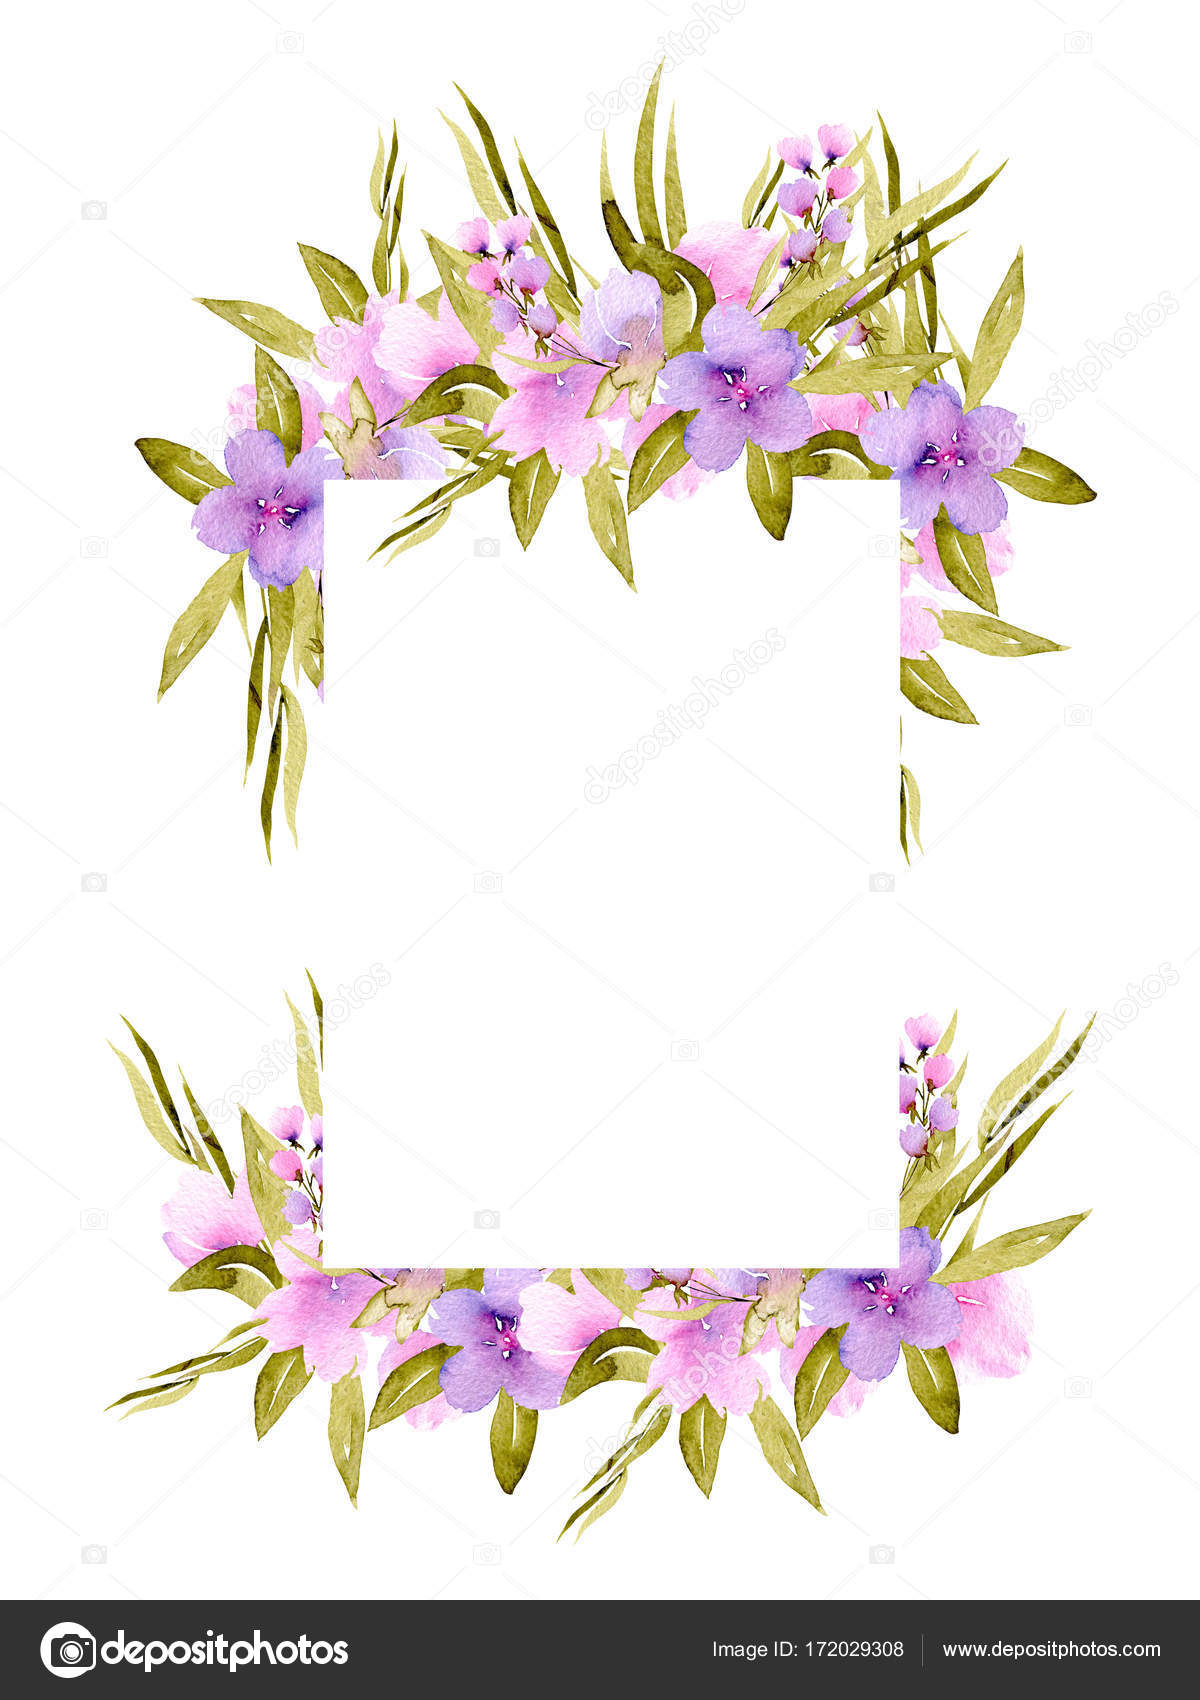 Frame Border With Pink And Purple Small Wildflowers And Green Plants